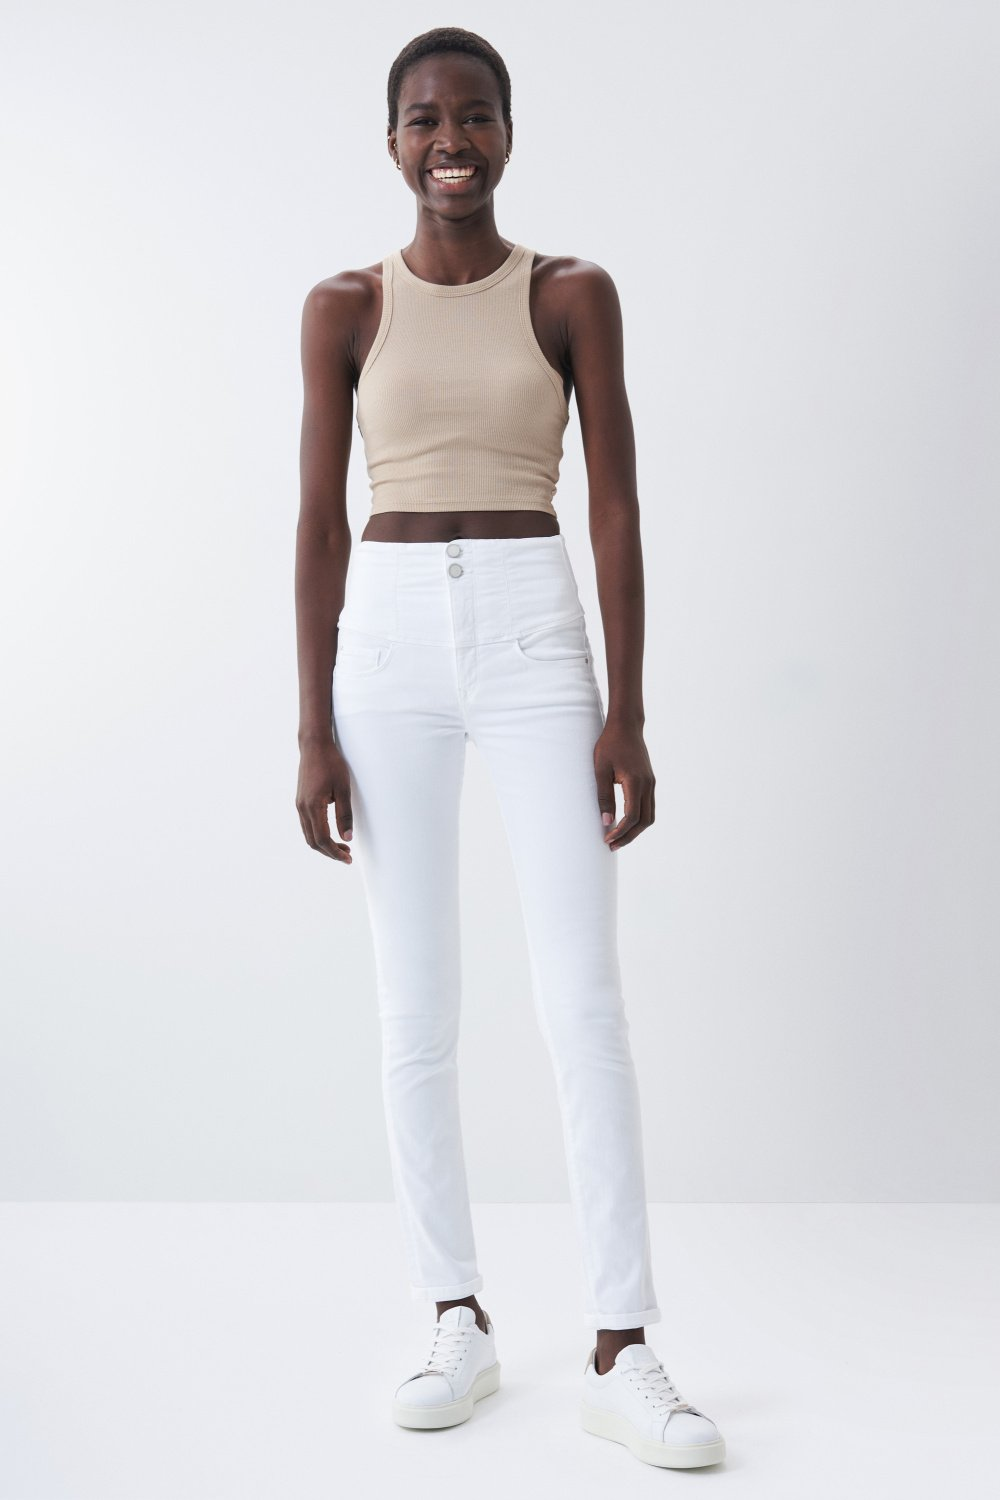 Diva slim fit slimming jeans - Salsa